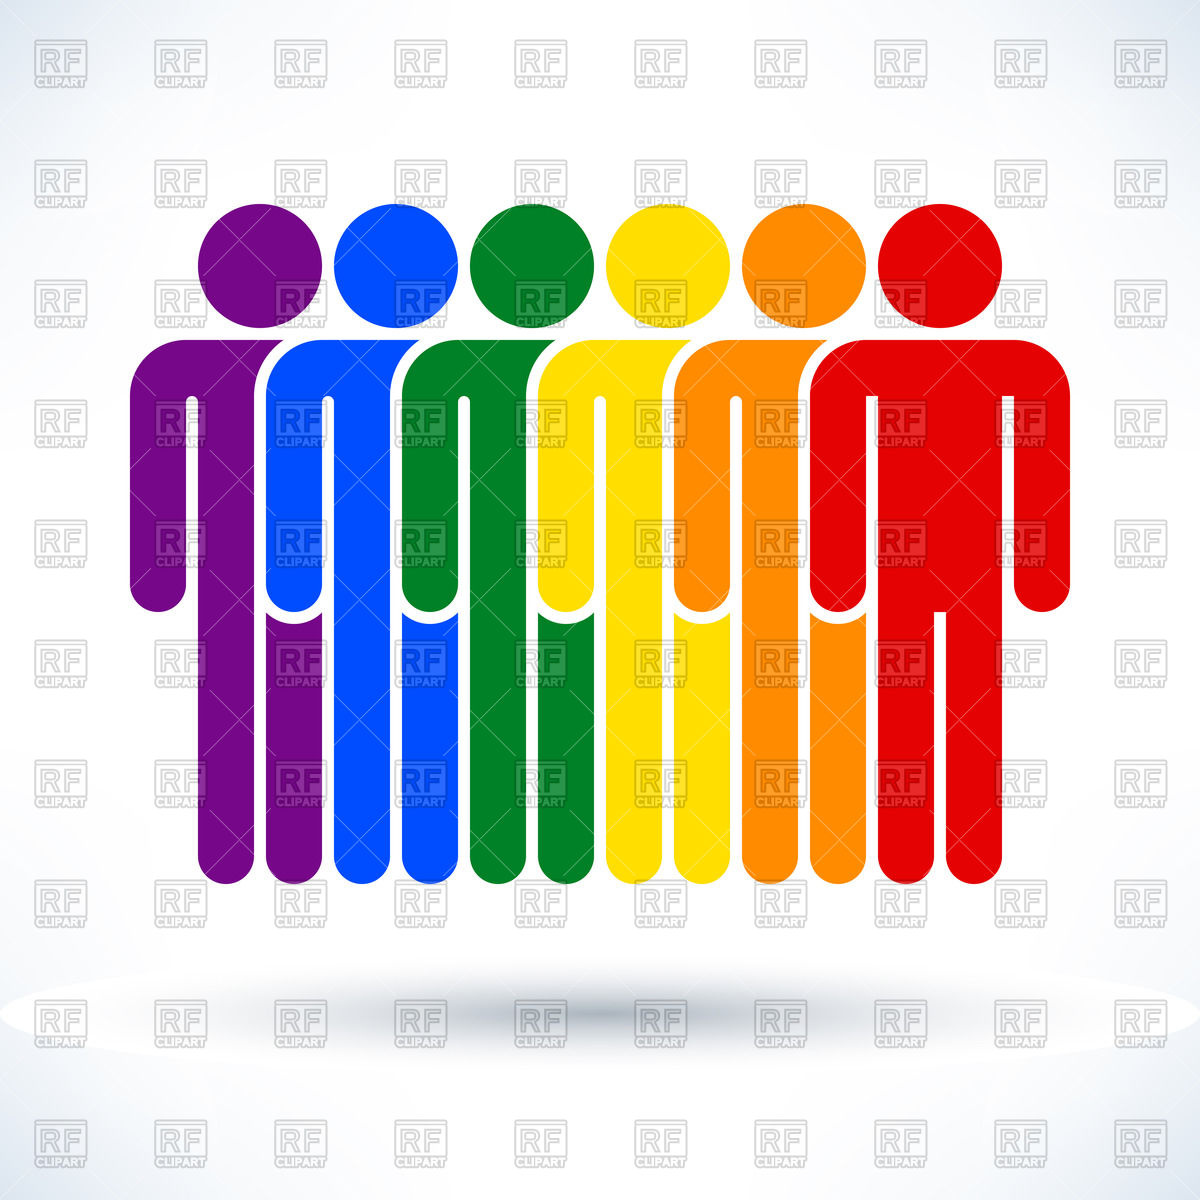 Row of people clipart clip art library download Rows of people clipart - ClipartFest clip art library download